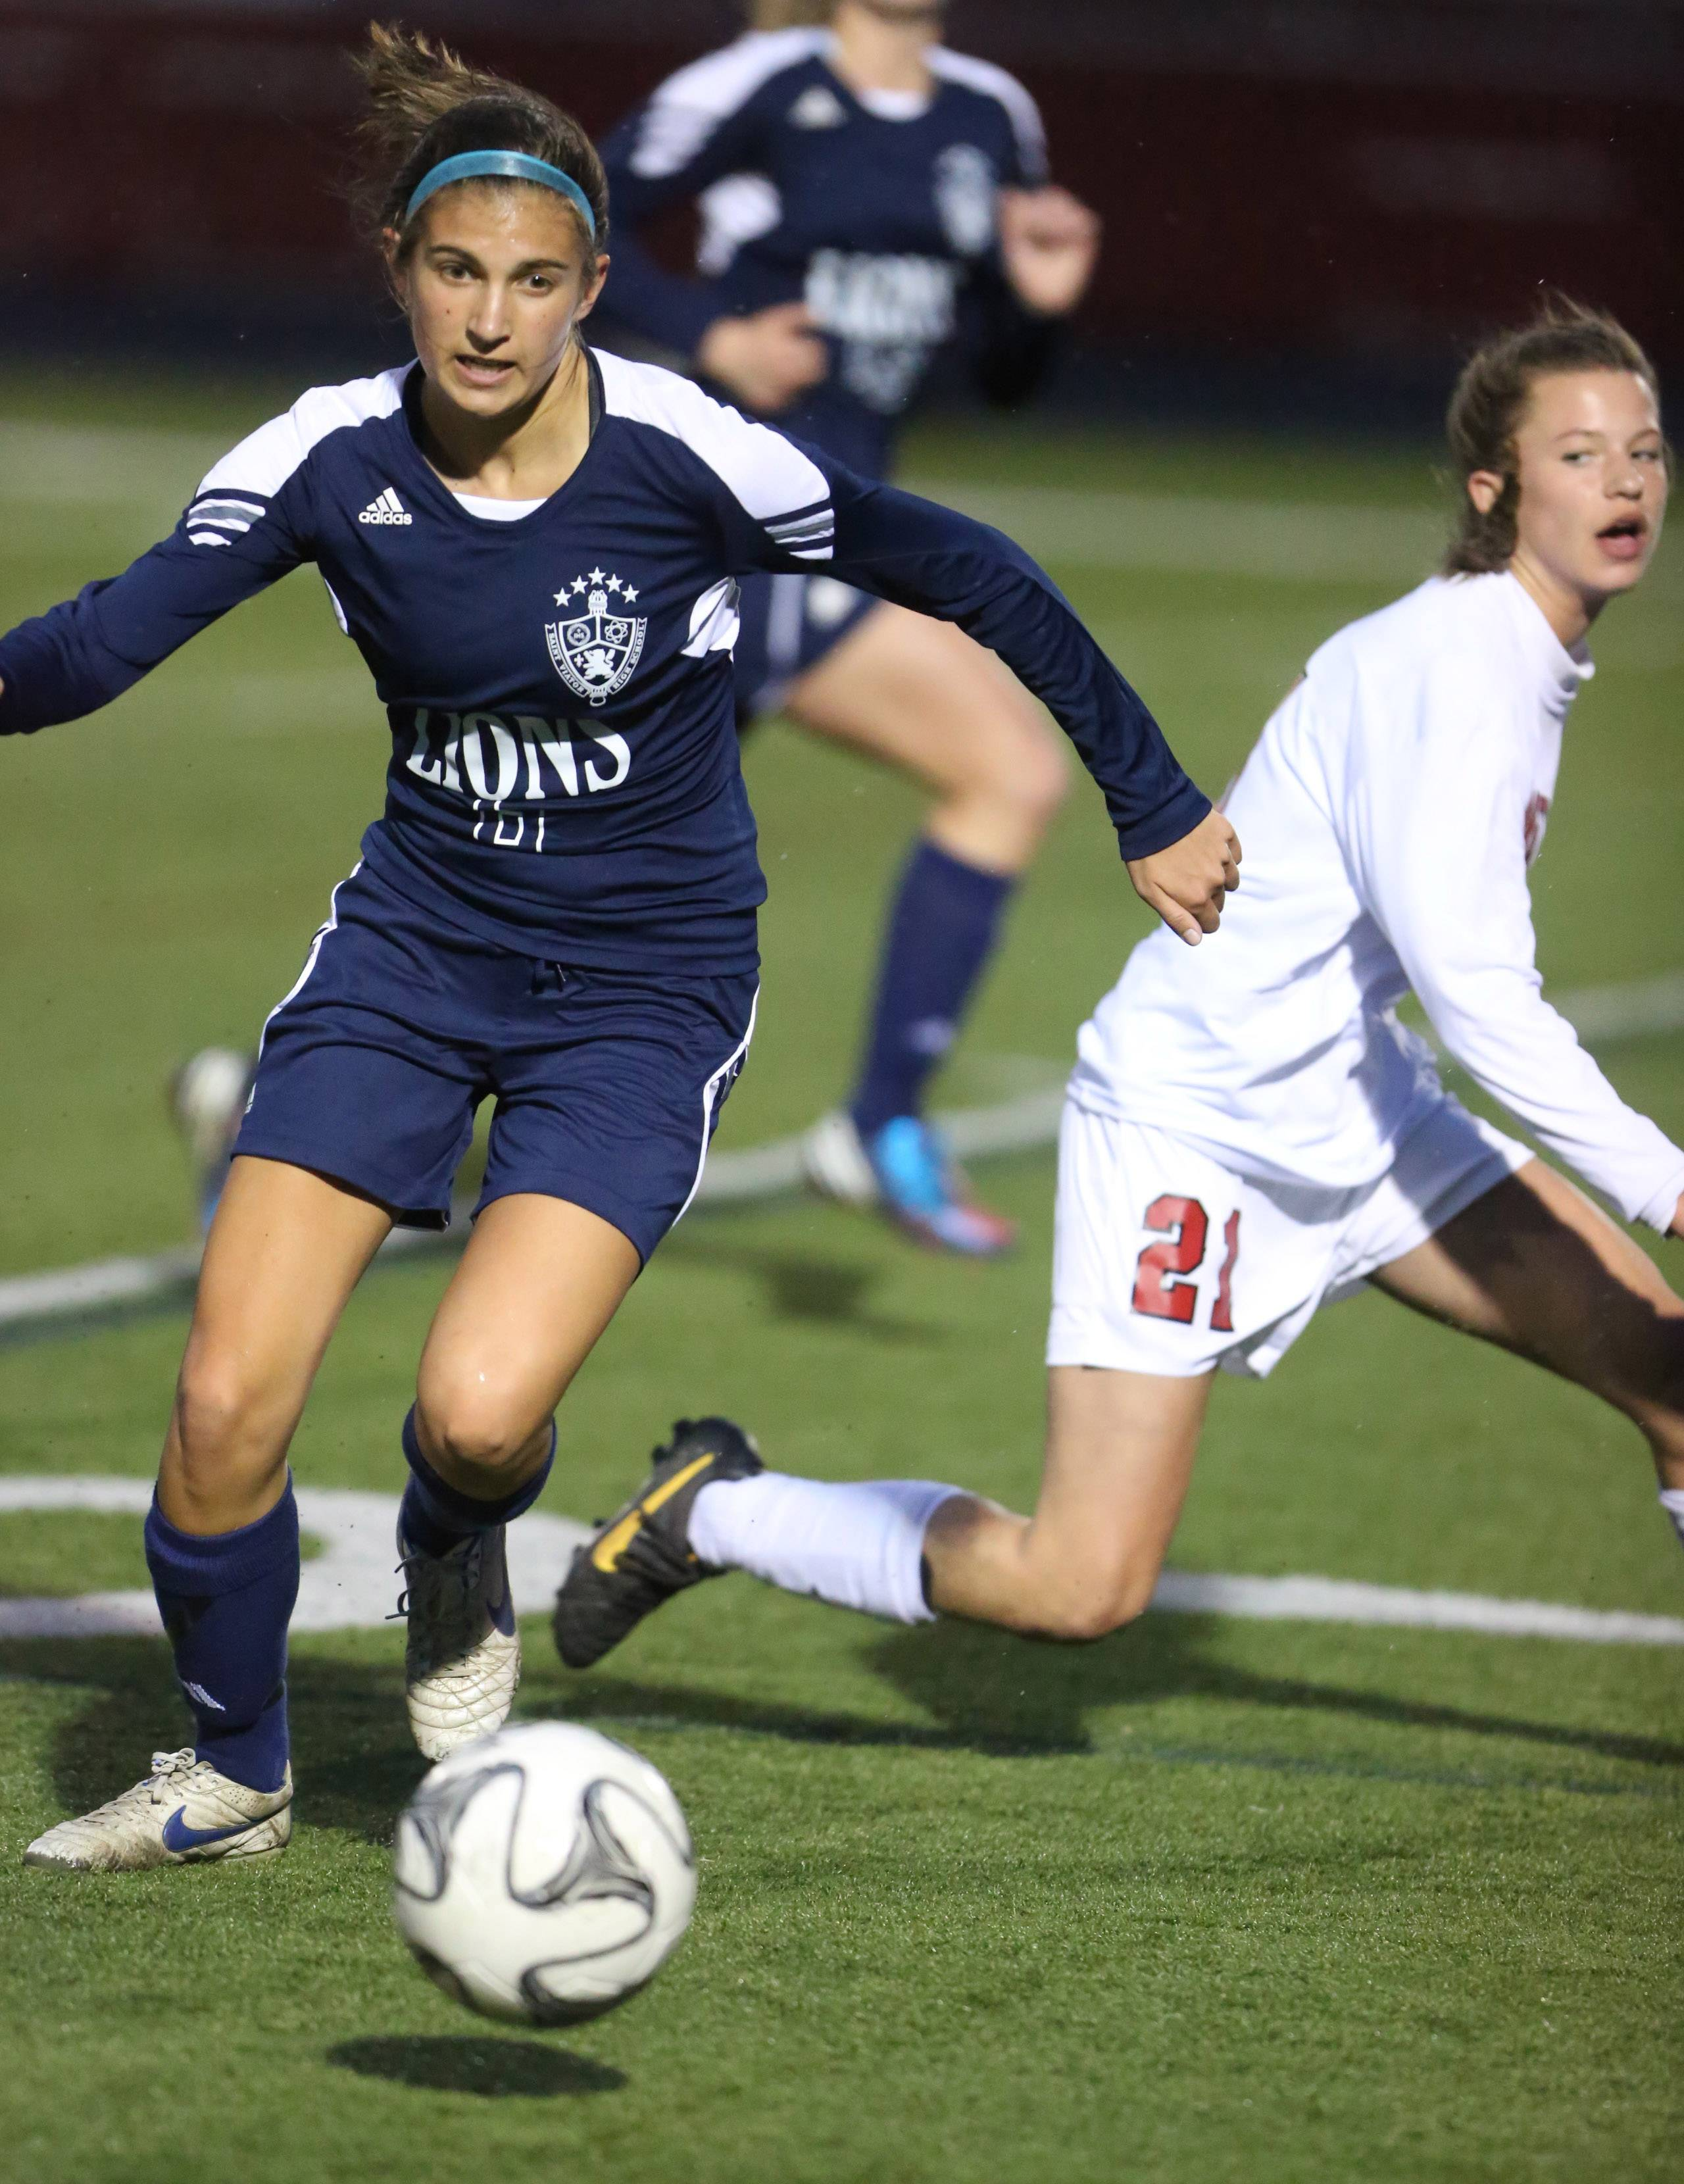 St. Viator's Emma Henry, left, passes the ball ahead of Barrington's Kayla Schutter on Thursday.